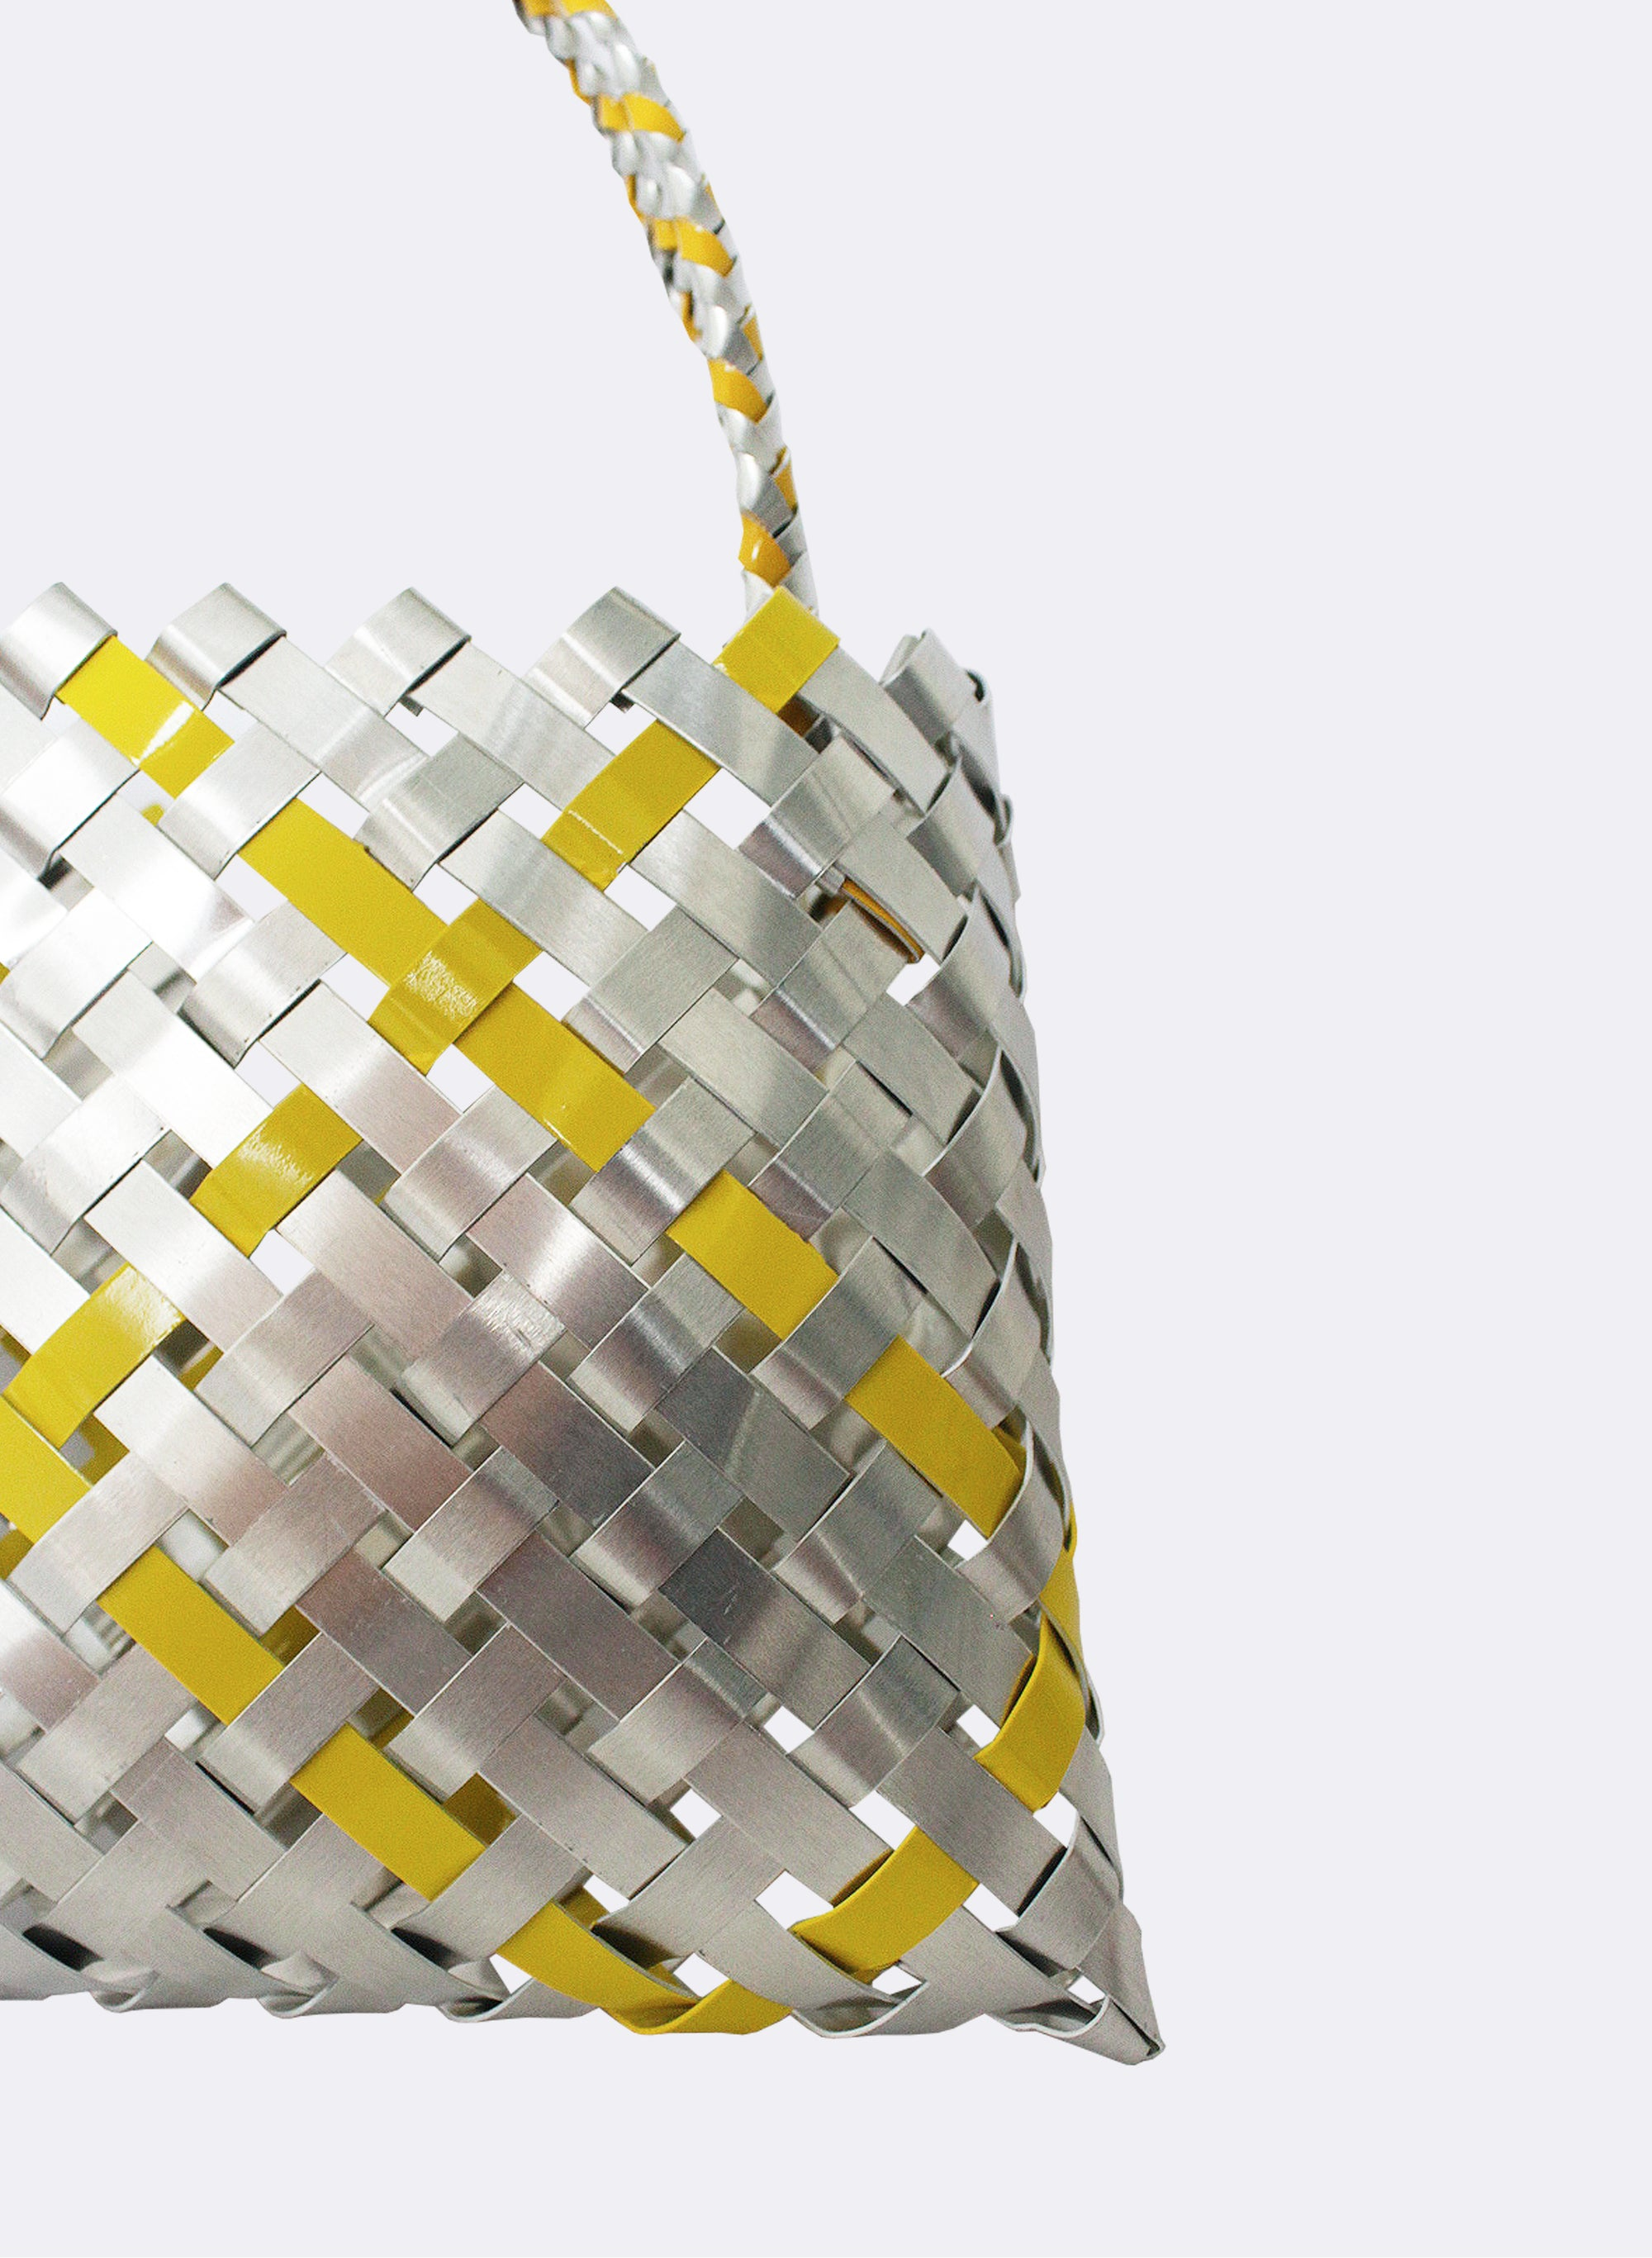 Aluminium And Yellow Kete (12 End)